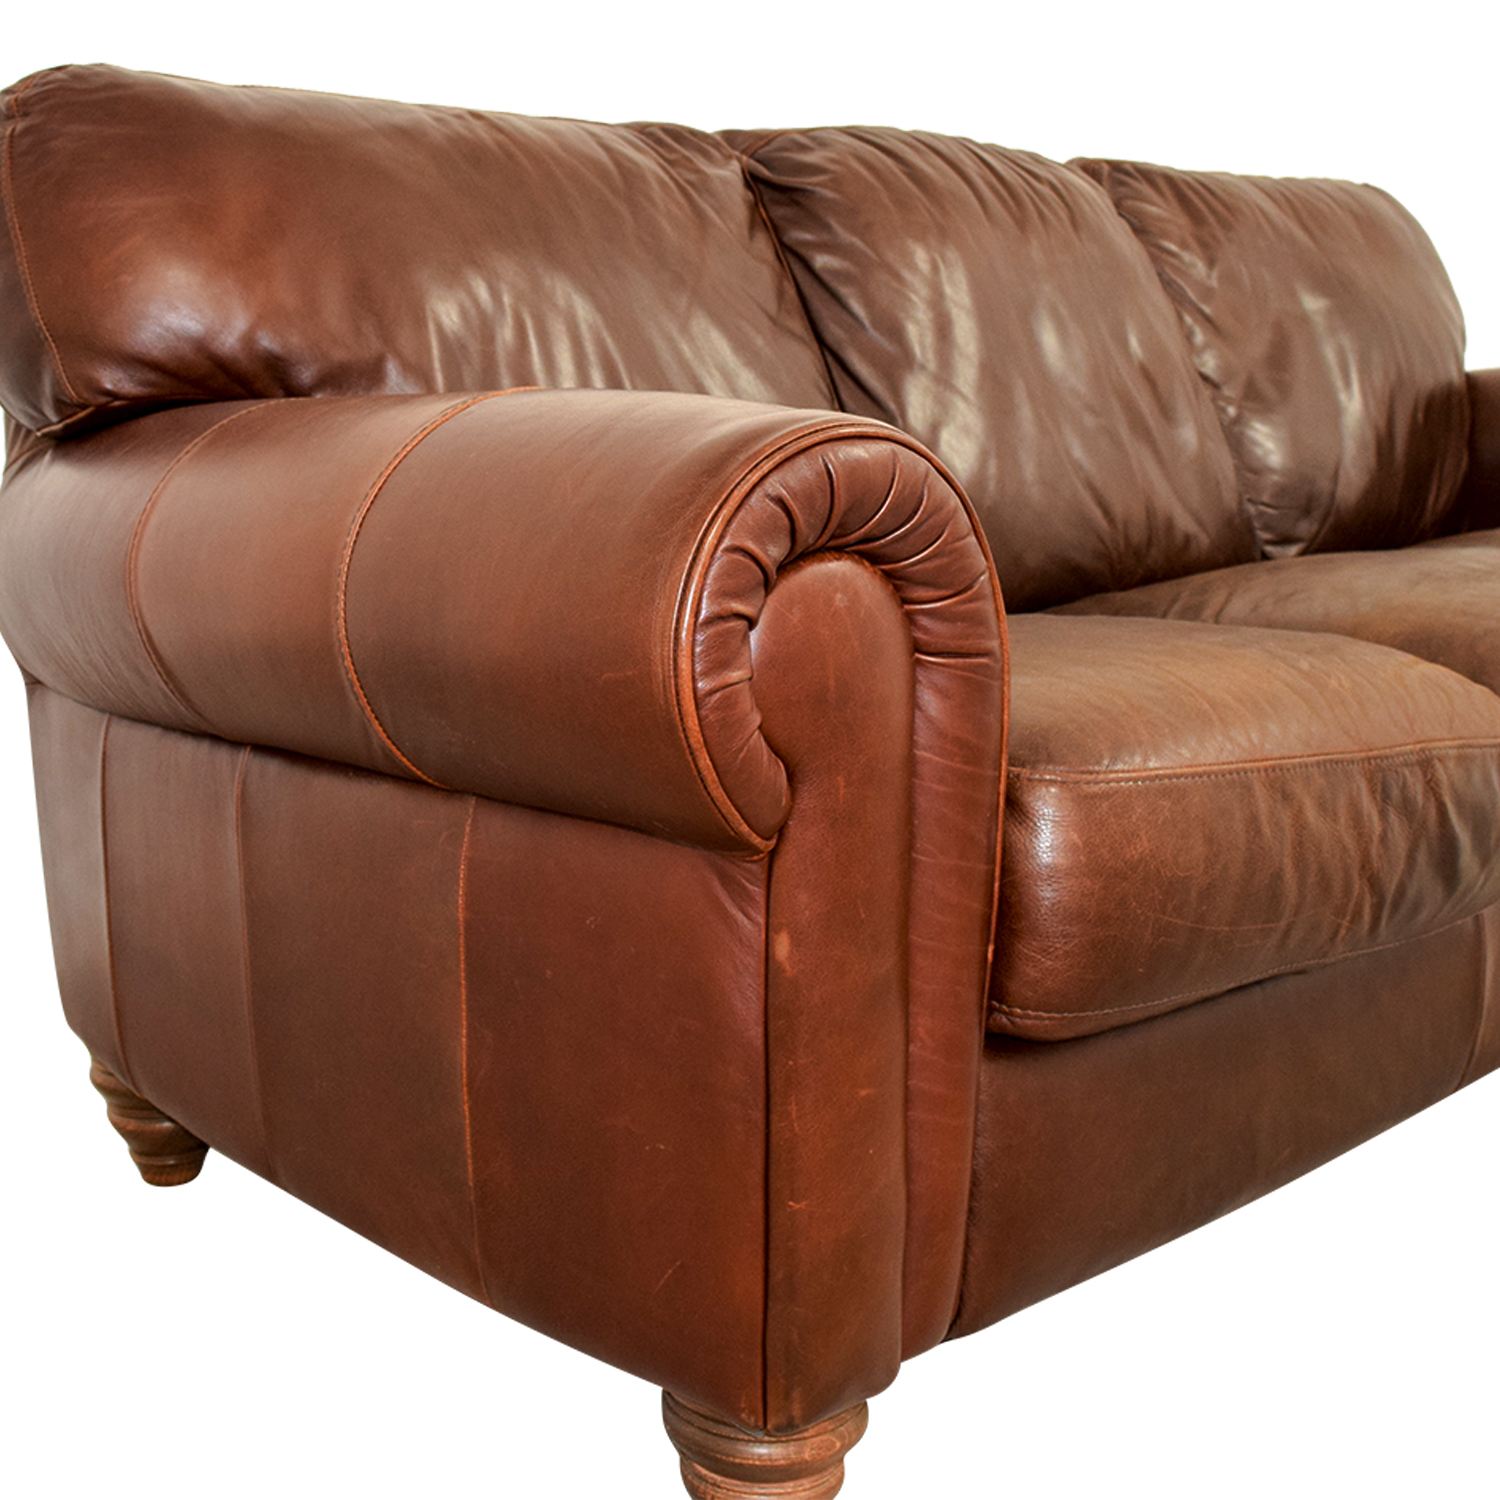 Second Hand Leather Sofas In Redditch: Brown Three-Cushion Leather Couch / Sofas